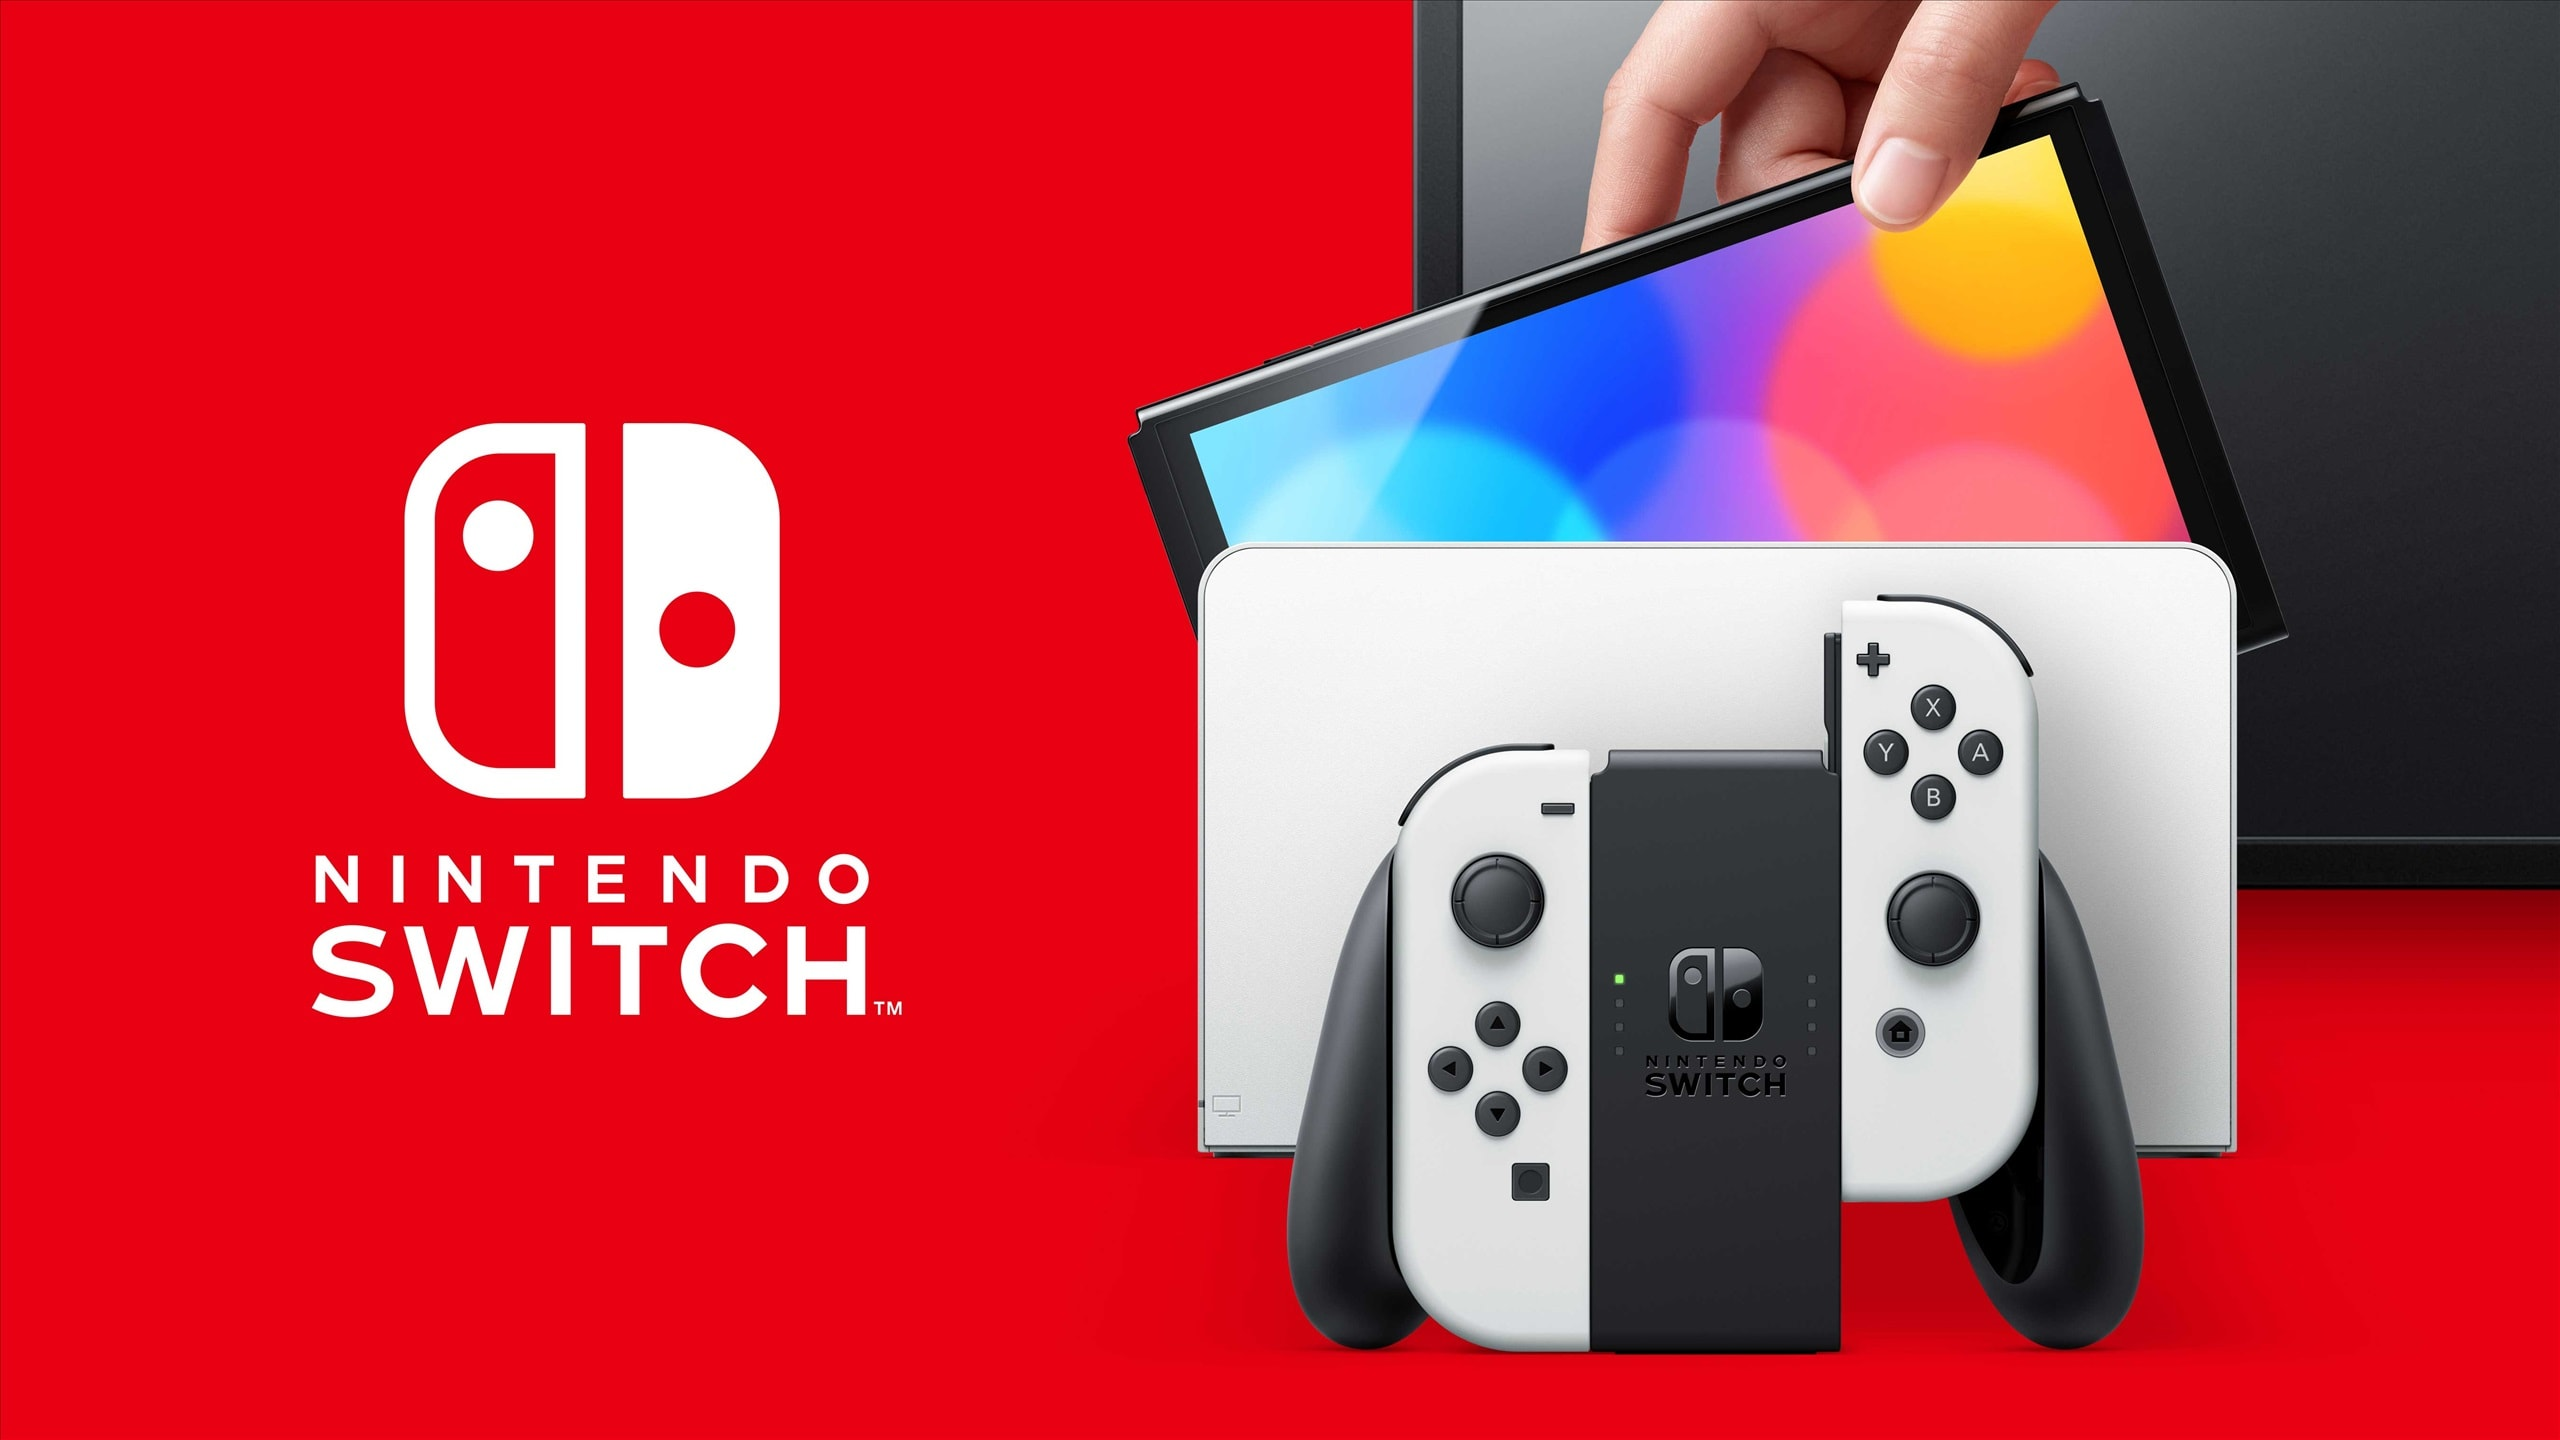 Nintendo releases a new Nintendo Switch model